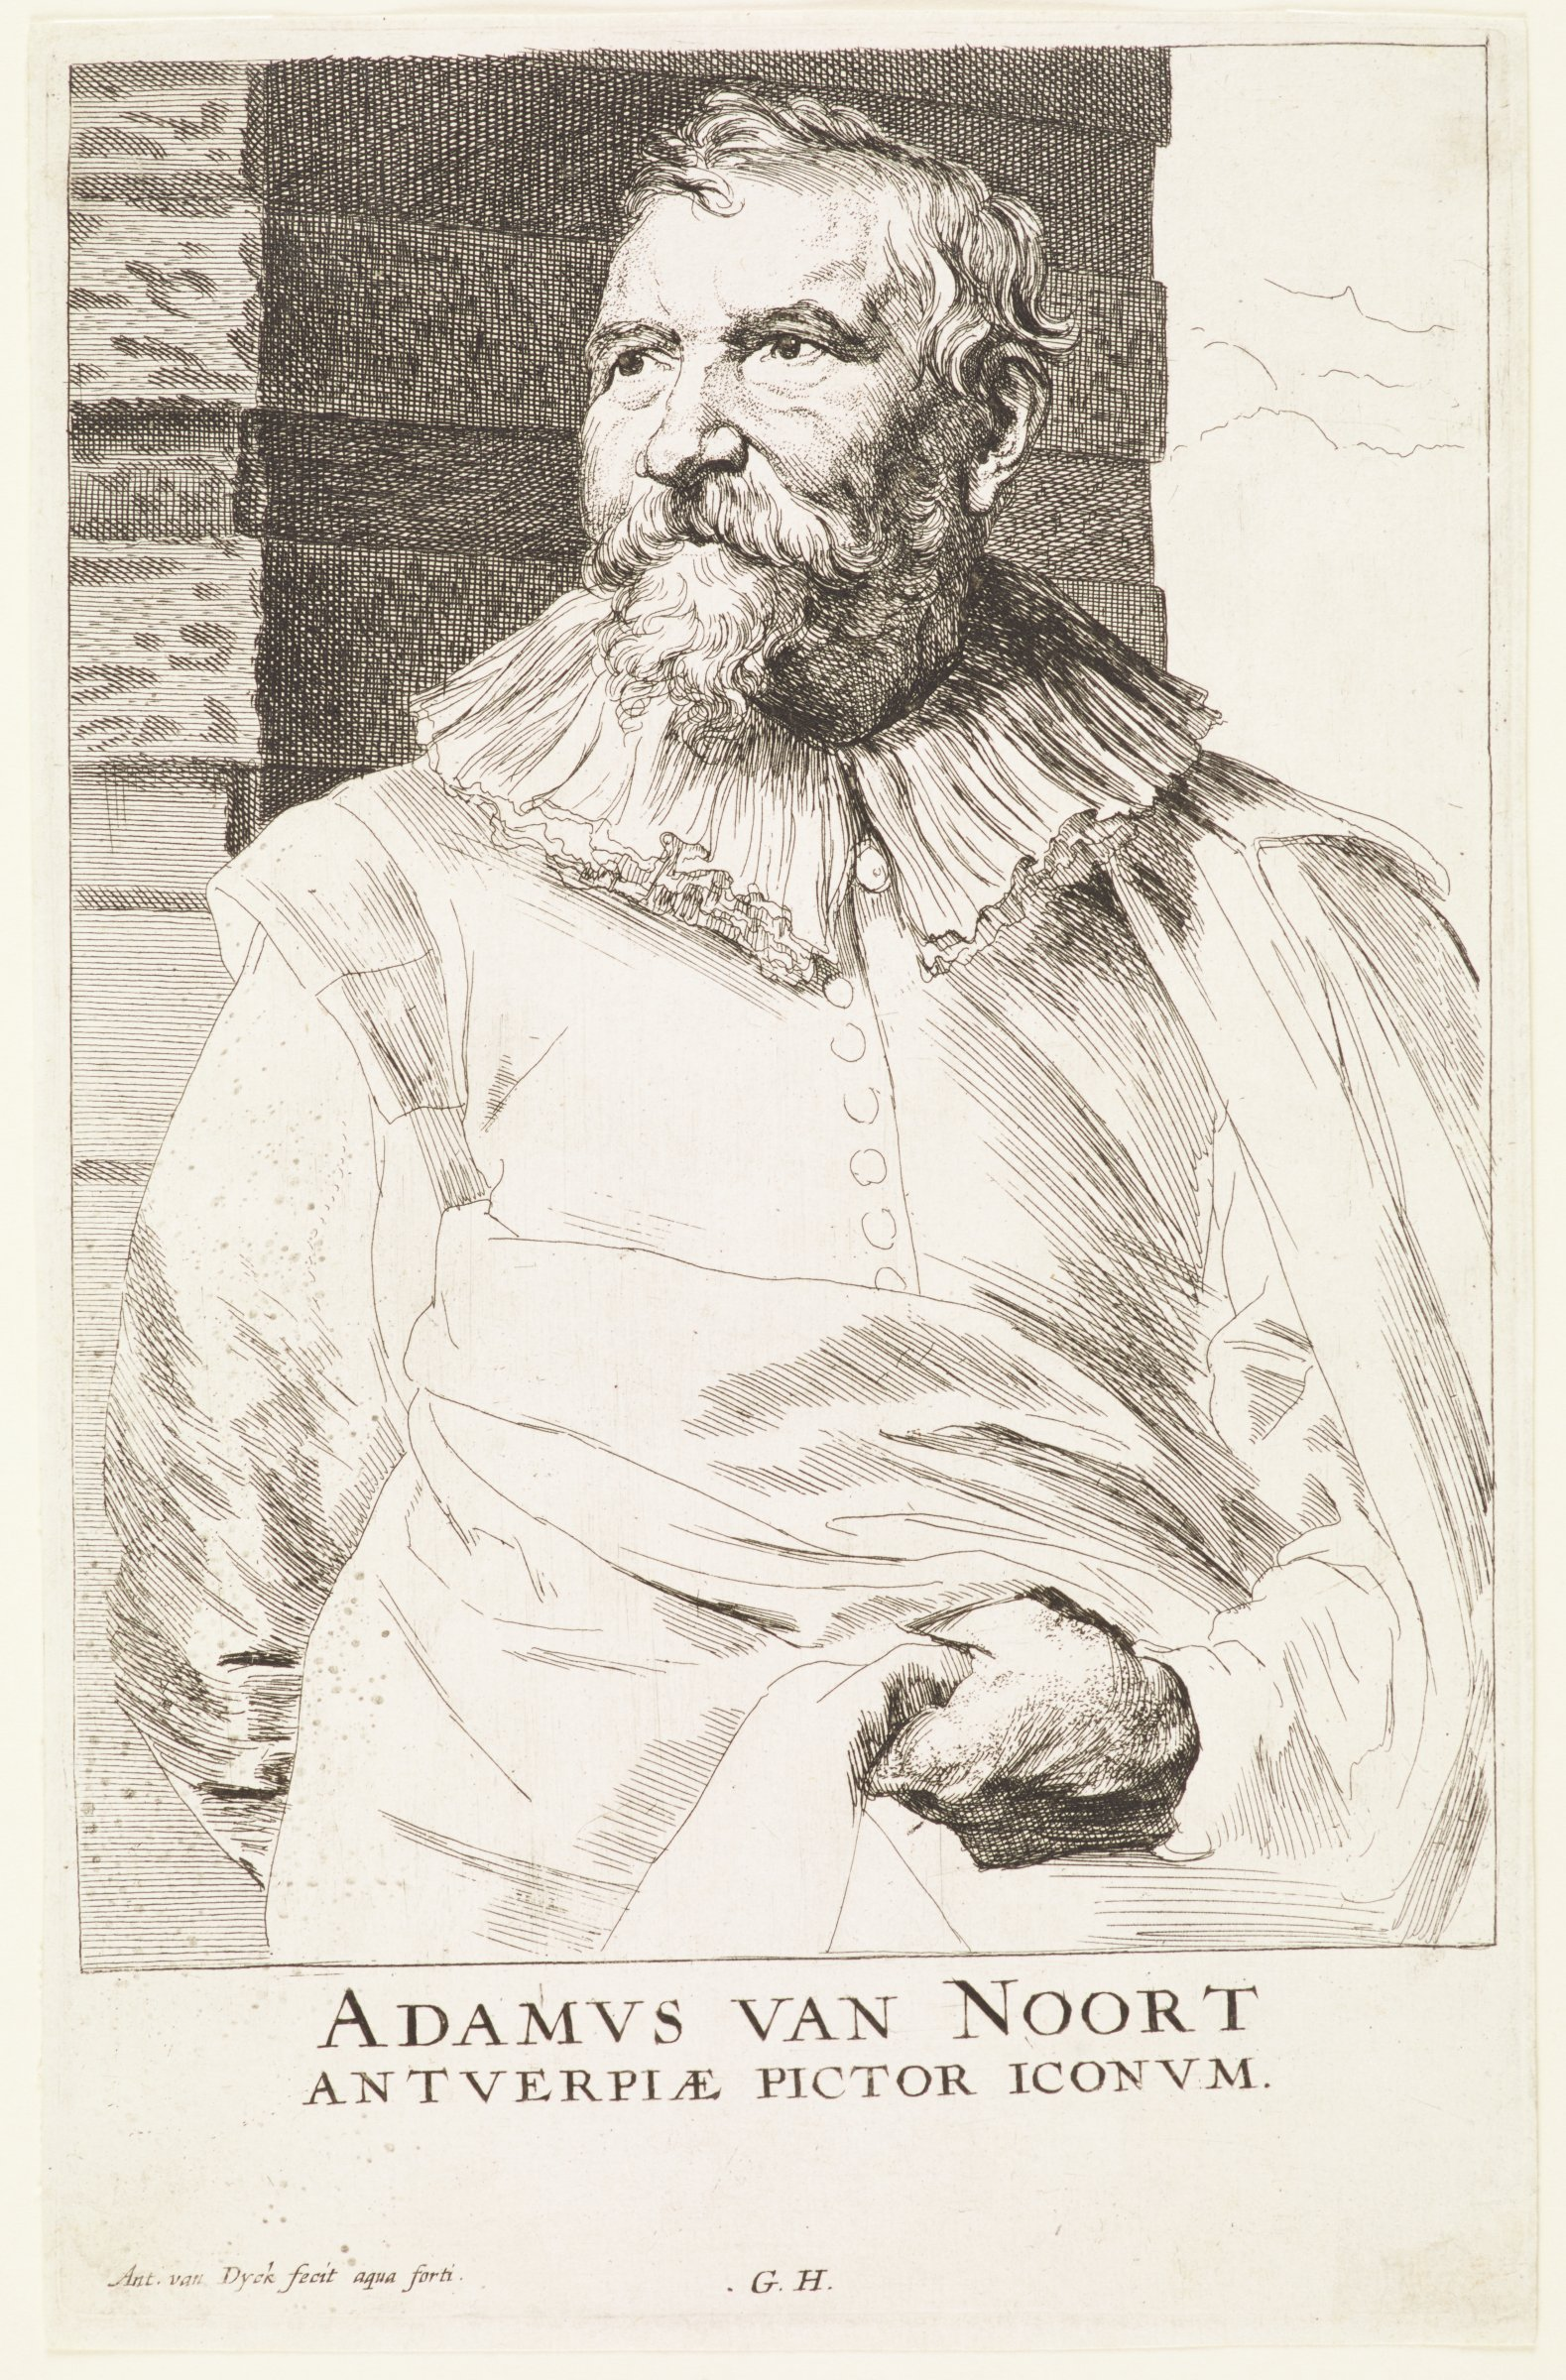 Adam van Noort was a history painter from Antwerp and a teacher of Rubens. He is seen here in portrait from the waist up, looking out to the proper right. He wears a wide frilled collar with a long cloak that he gathers at his stomach with his left hand. He stands against a brick colomn. This is from the Gillis Hendricx edition of the Iconography (Icones Principum Virorum Doctorum, Pictorum Chalcographorum Statuorum nec non Amatorum Pictoriae Artis Numero Centum), 1632-44.